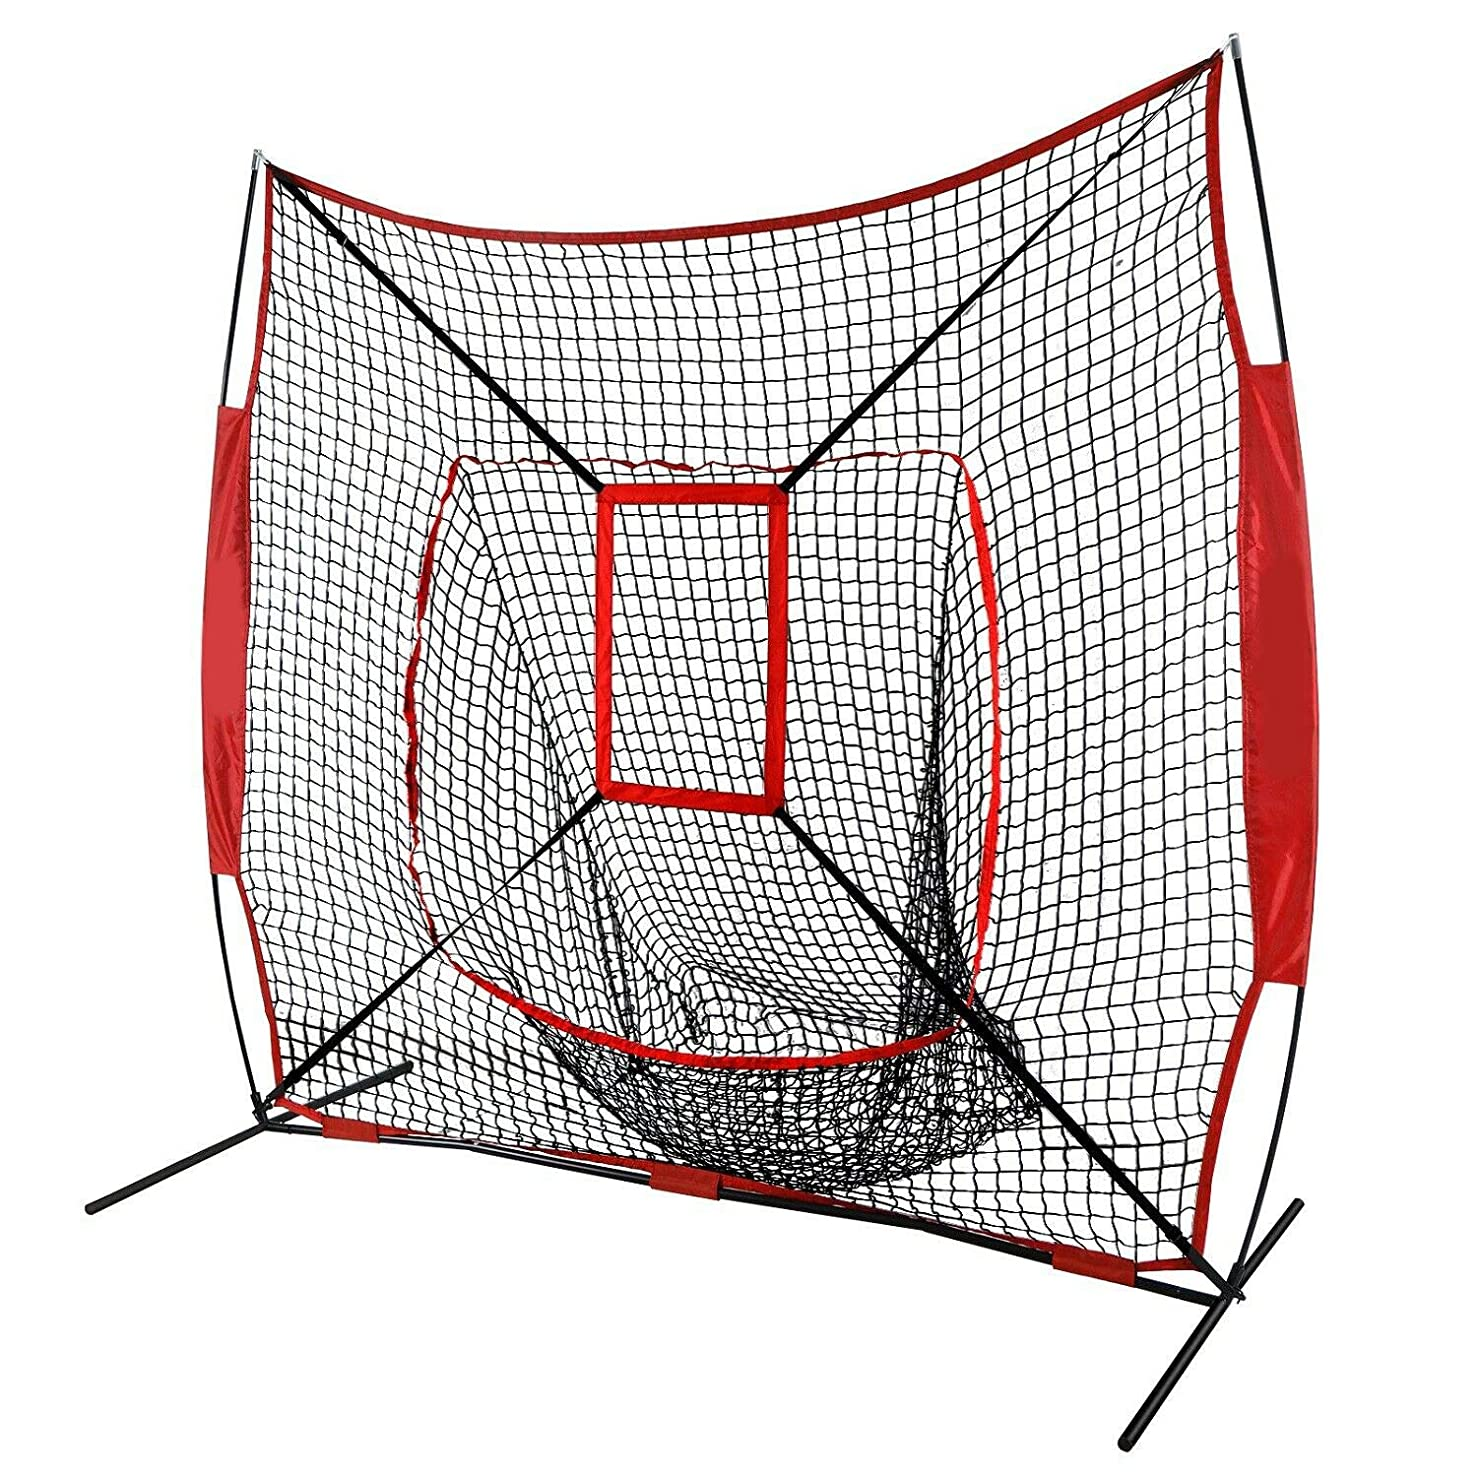 7'×7' Baseball Softball Practice Net Hit Cage Frame Strike Zone Area Carry Bring Bag Sporting Goods Team Sports Training Aid Batting Cages Netting Beat Whack Smack Practice Practise Disciplining Gauze